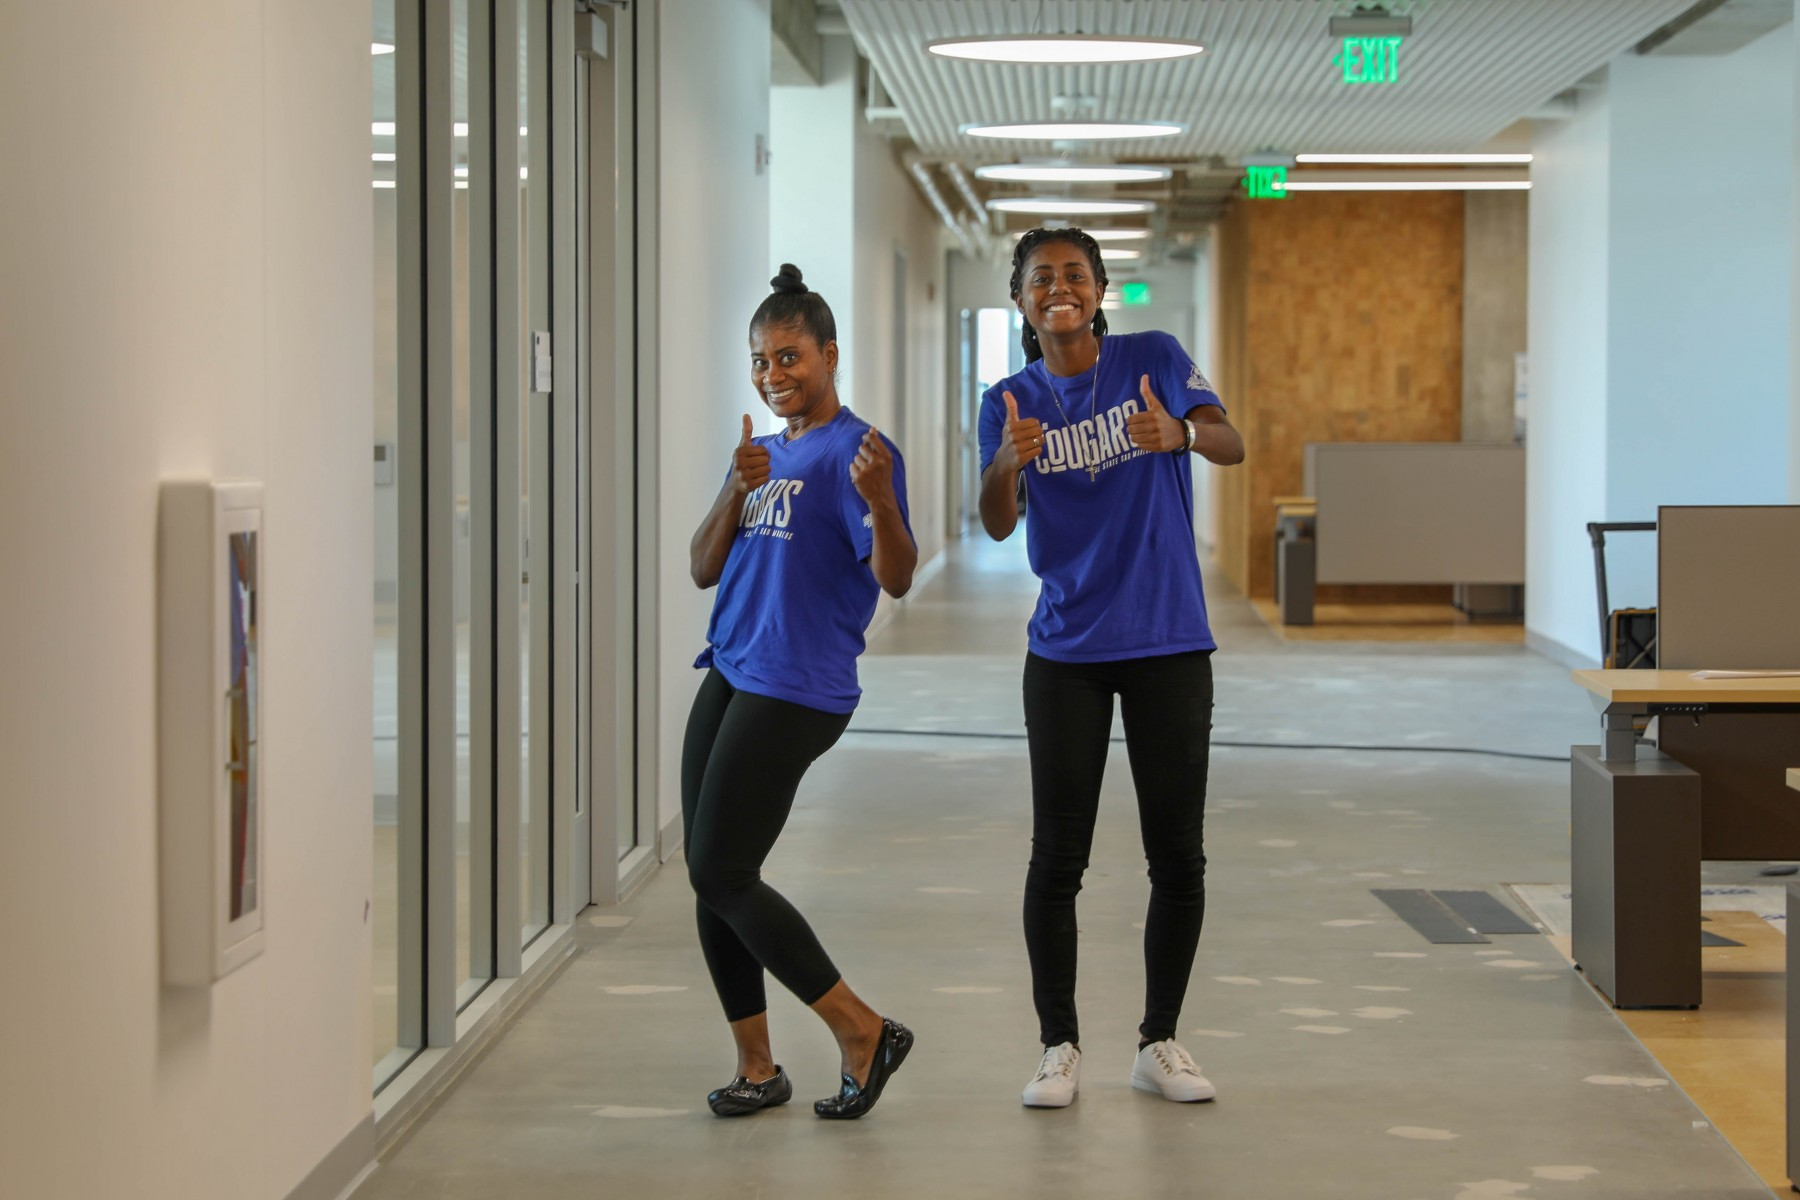 Friday, Aug. 23 was move-in day at CSUSM's new Extended Learning building.